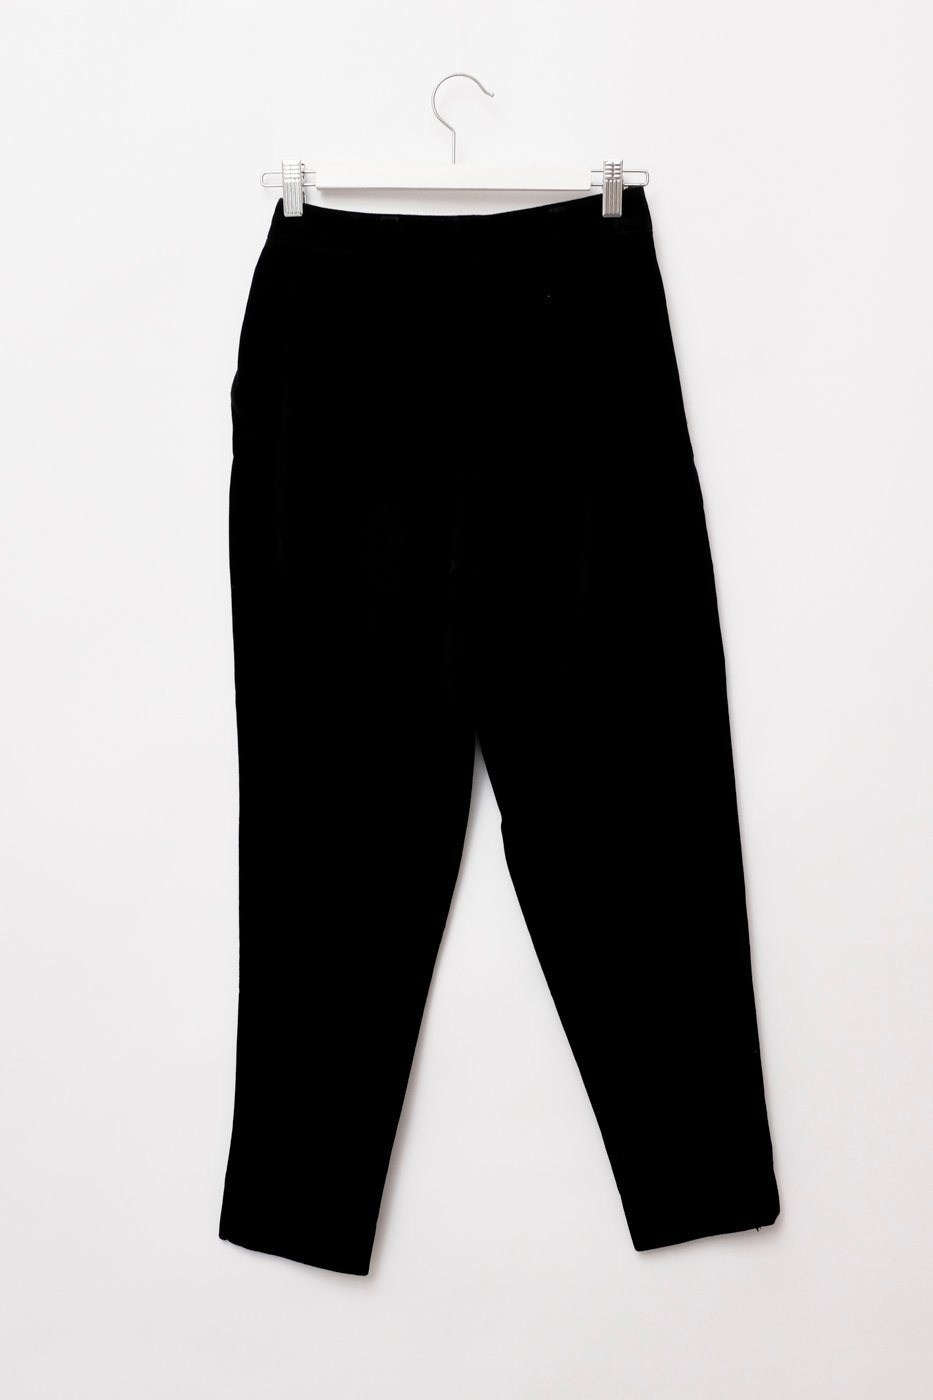 0305_VELVET CARROT BLACK HIGH WAIST PANTS